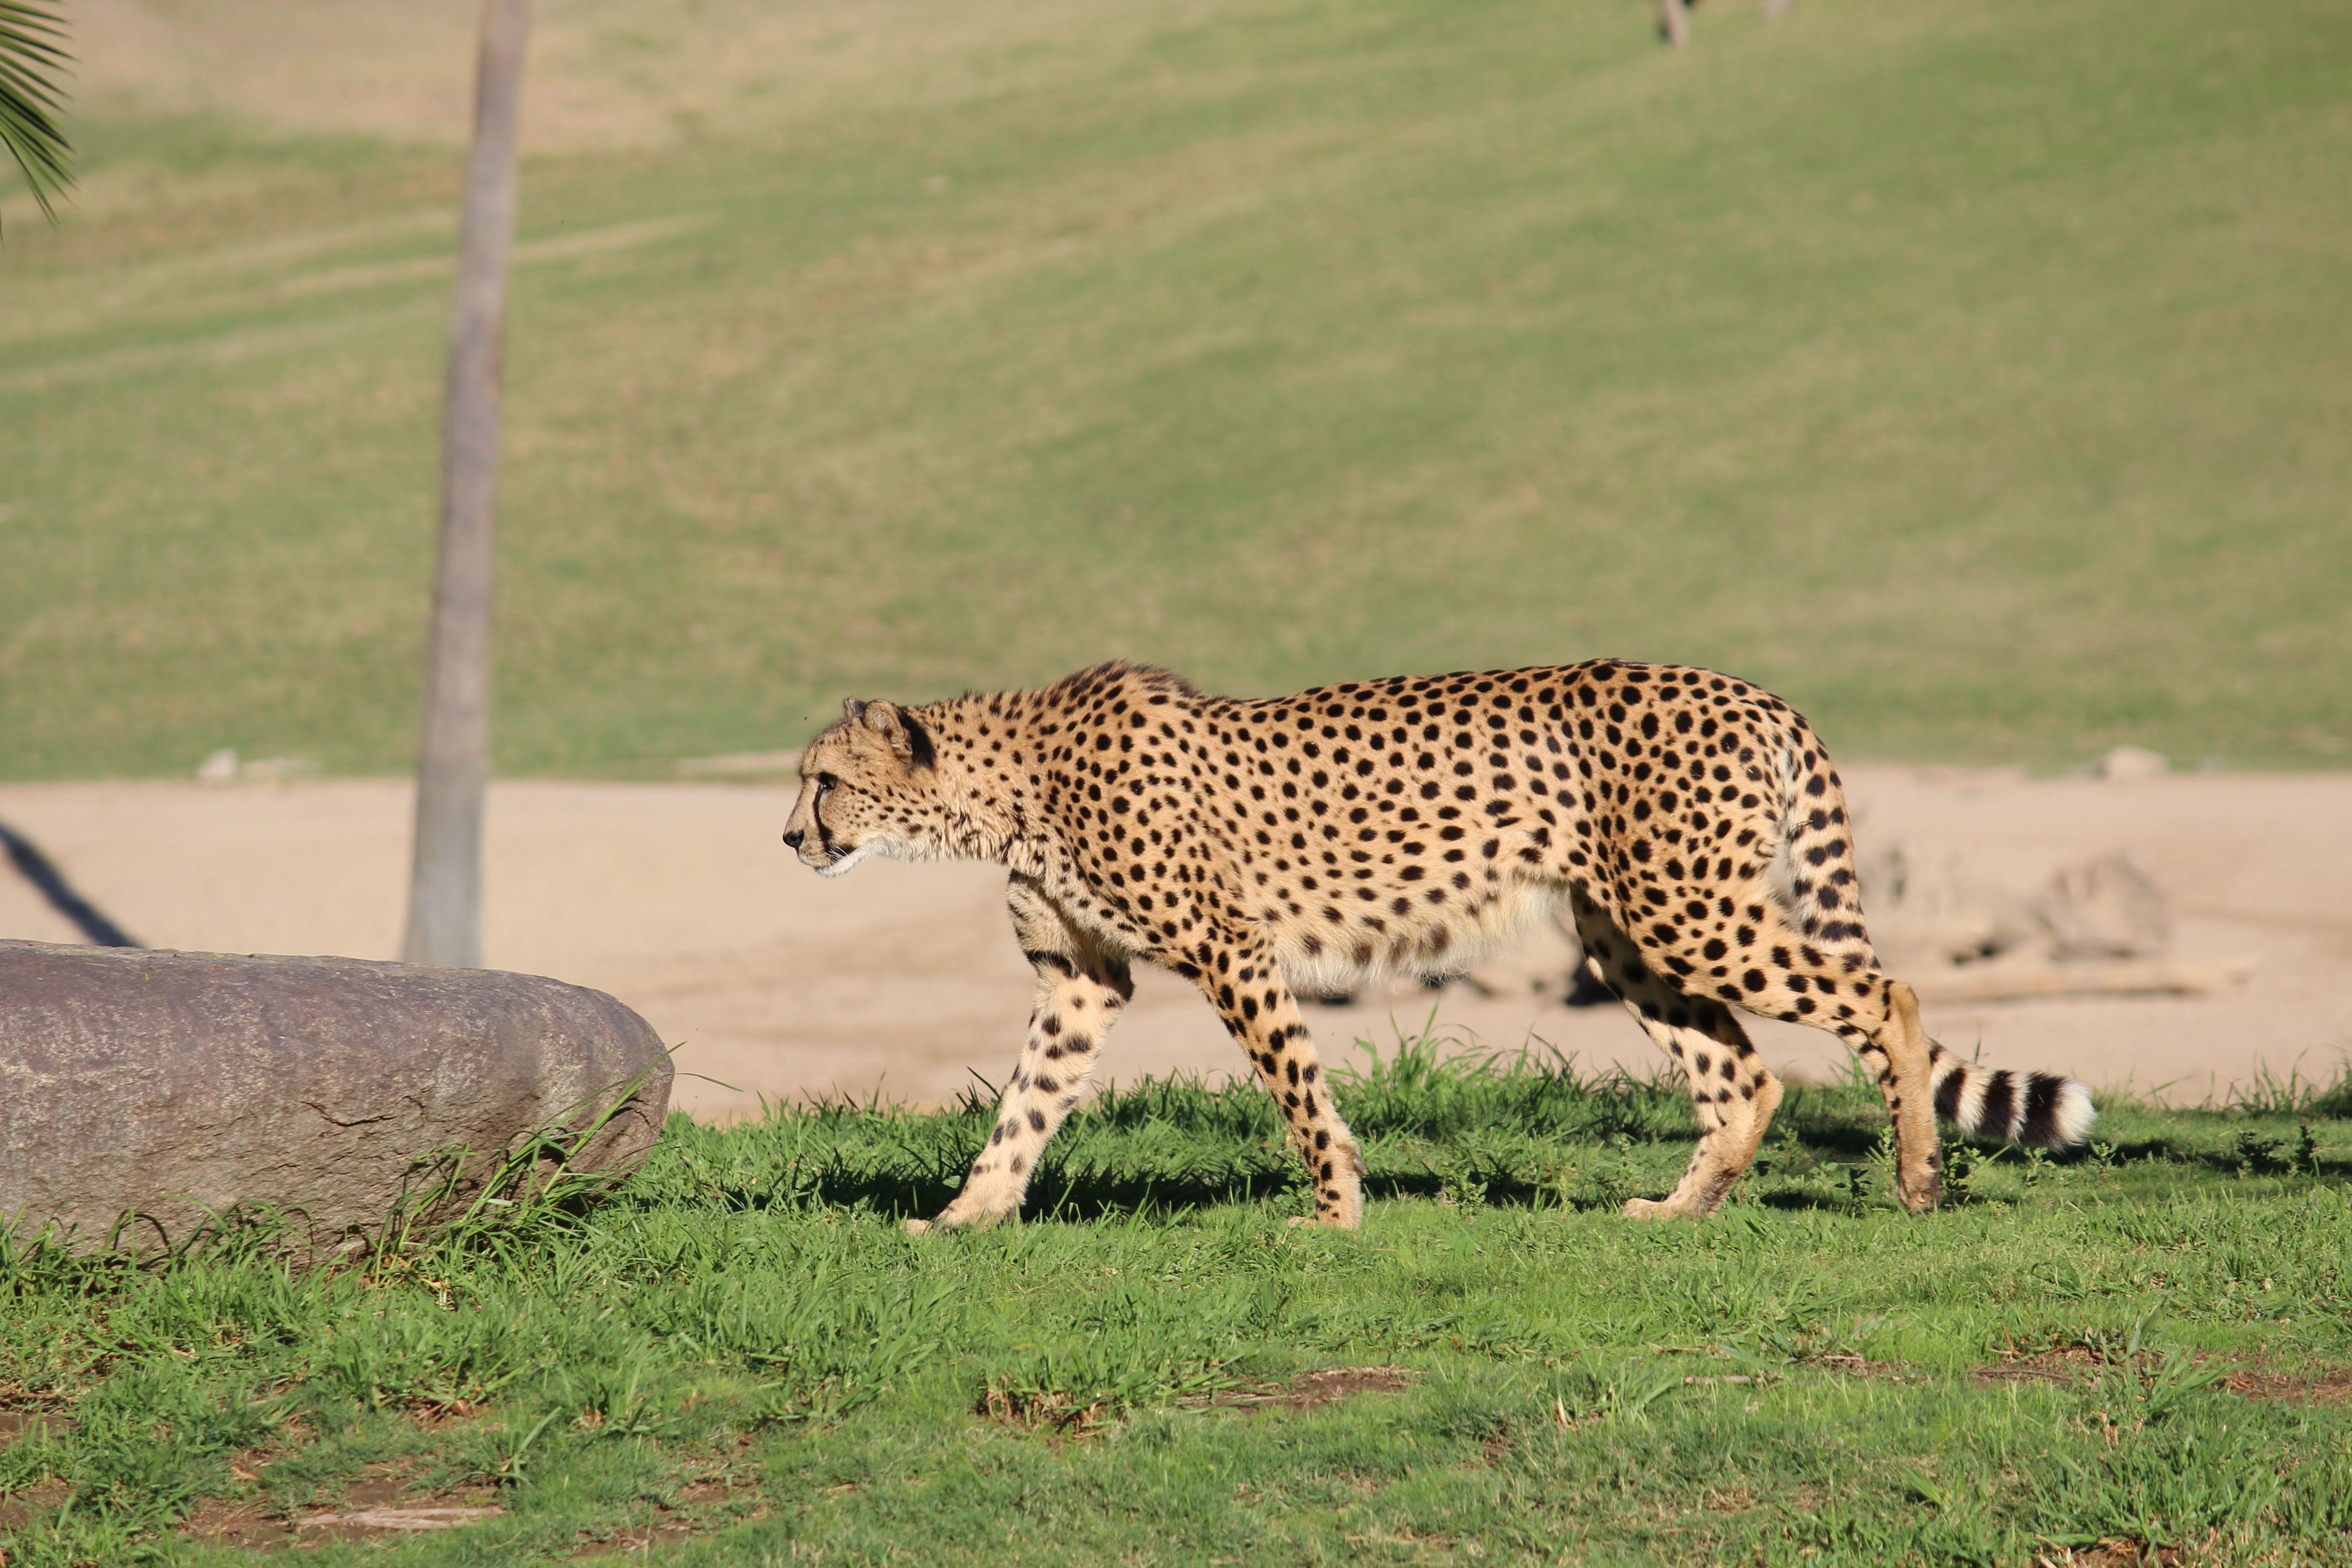 brown and black cheetah on grass field